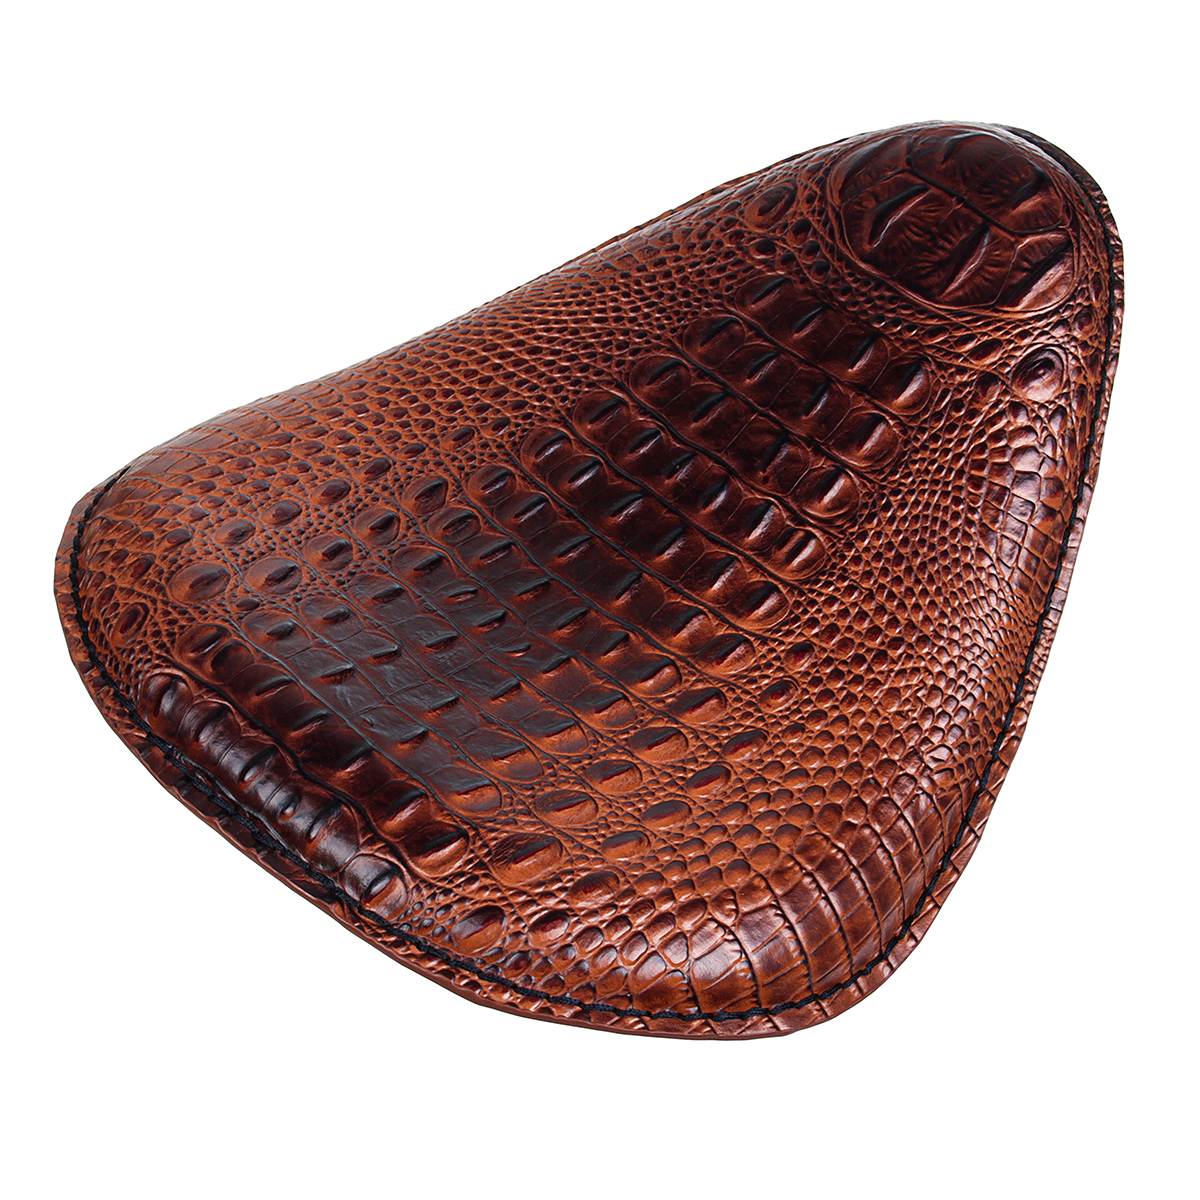 Motorcycle Solo Driver Racing Seat Cushion Spring Base Brown For Harley Universal